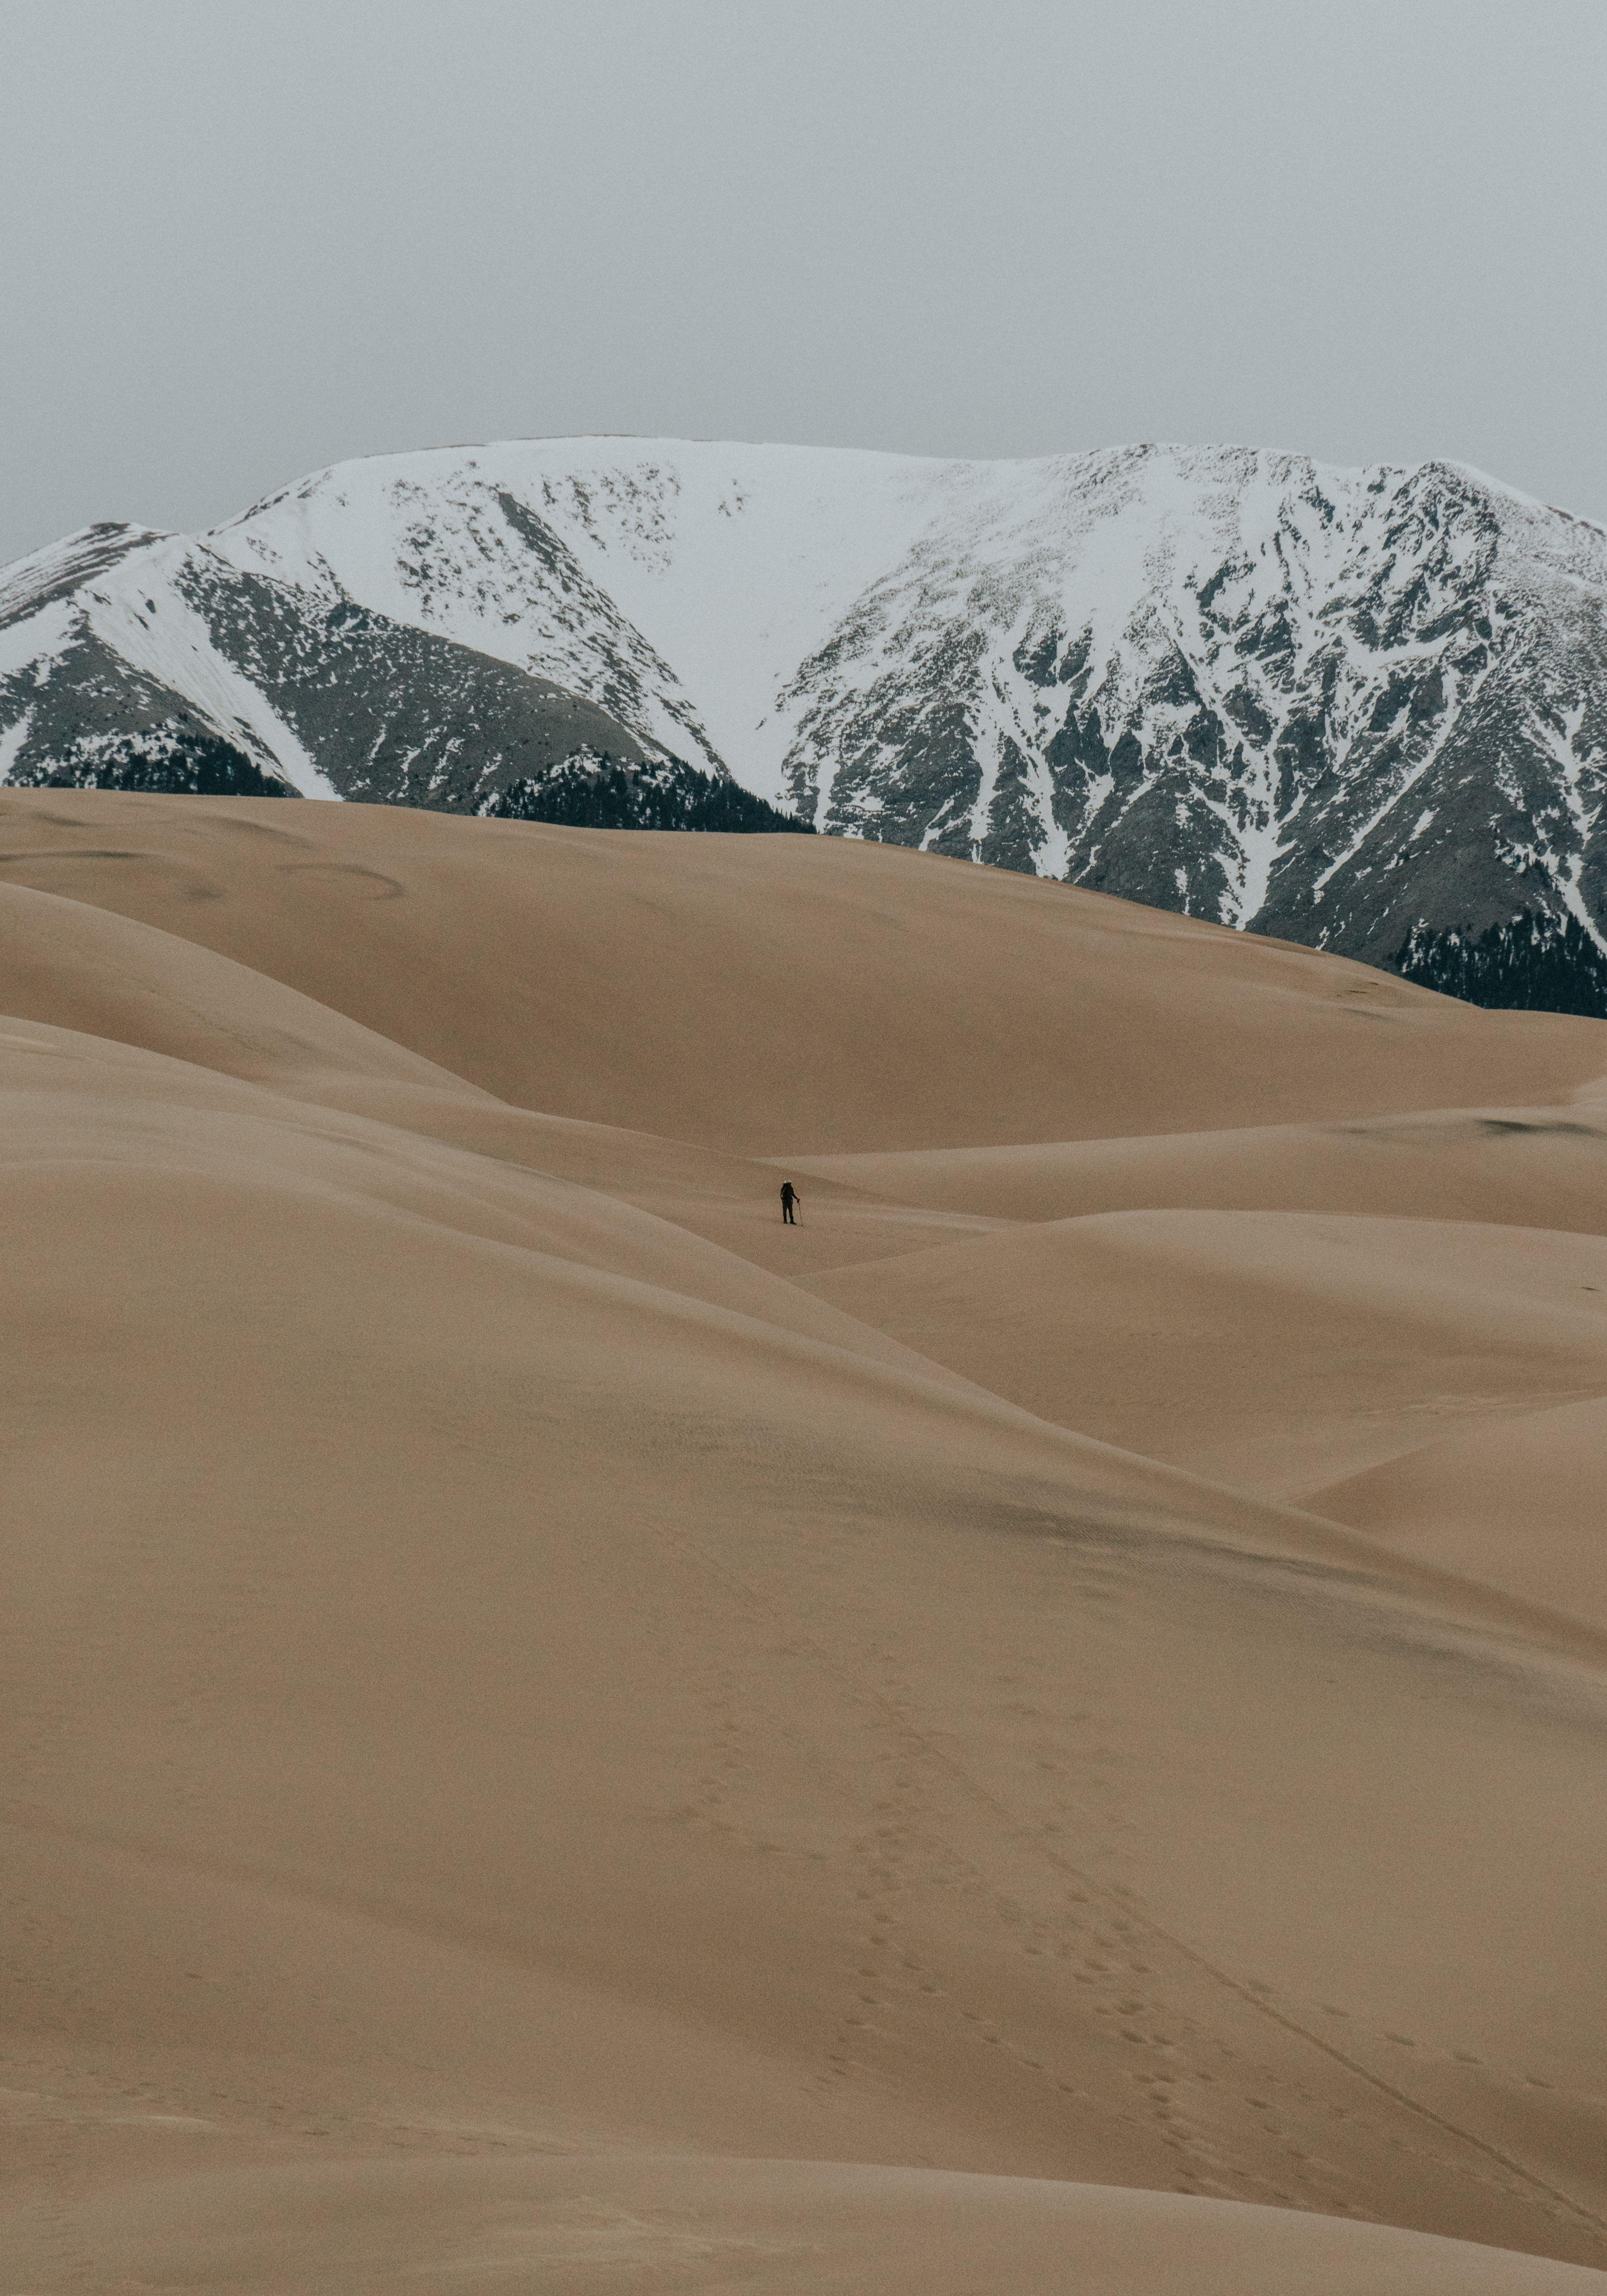 HD Wallpaper] The silhouette of a lone hiker among sand dunes with